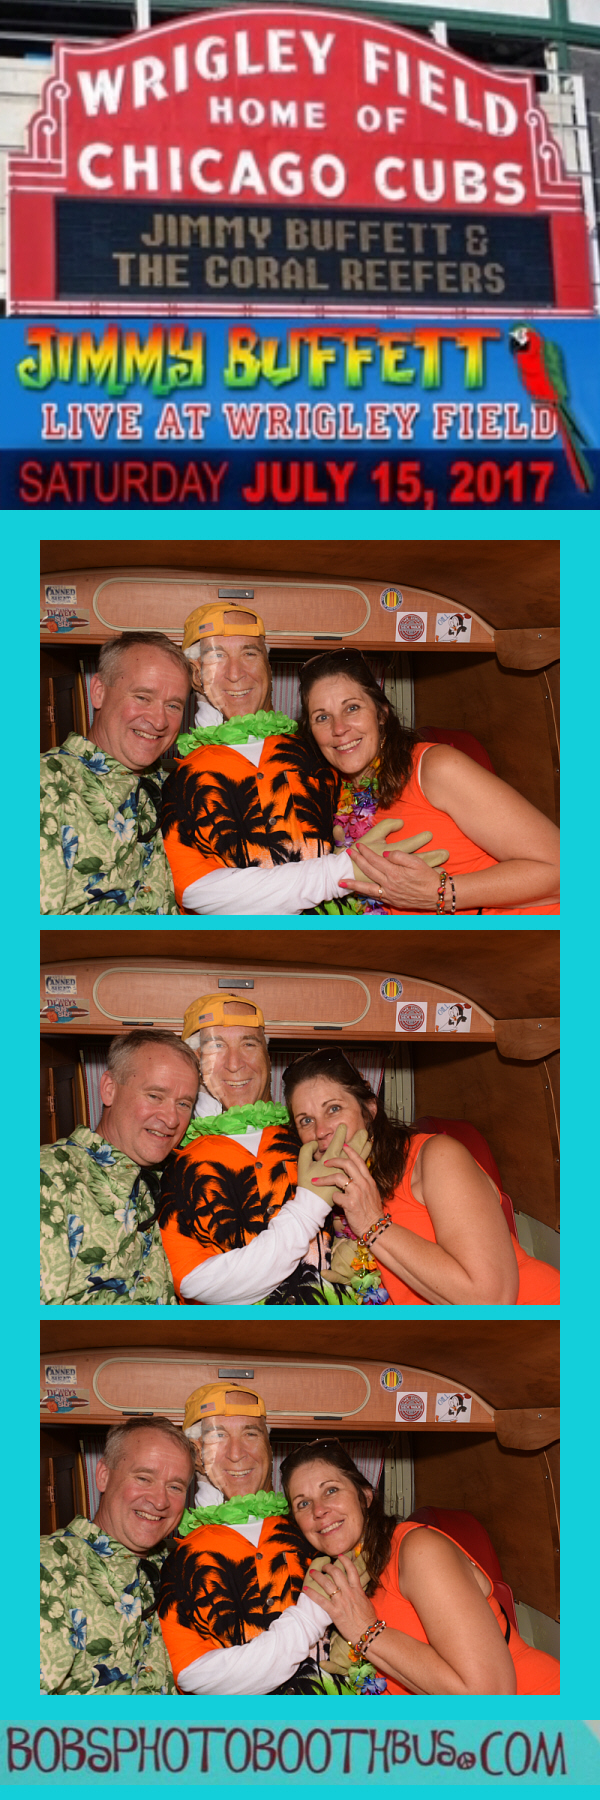 Jimmy Buffett final photo strip graphic_57.jpg